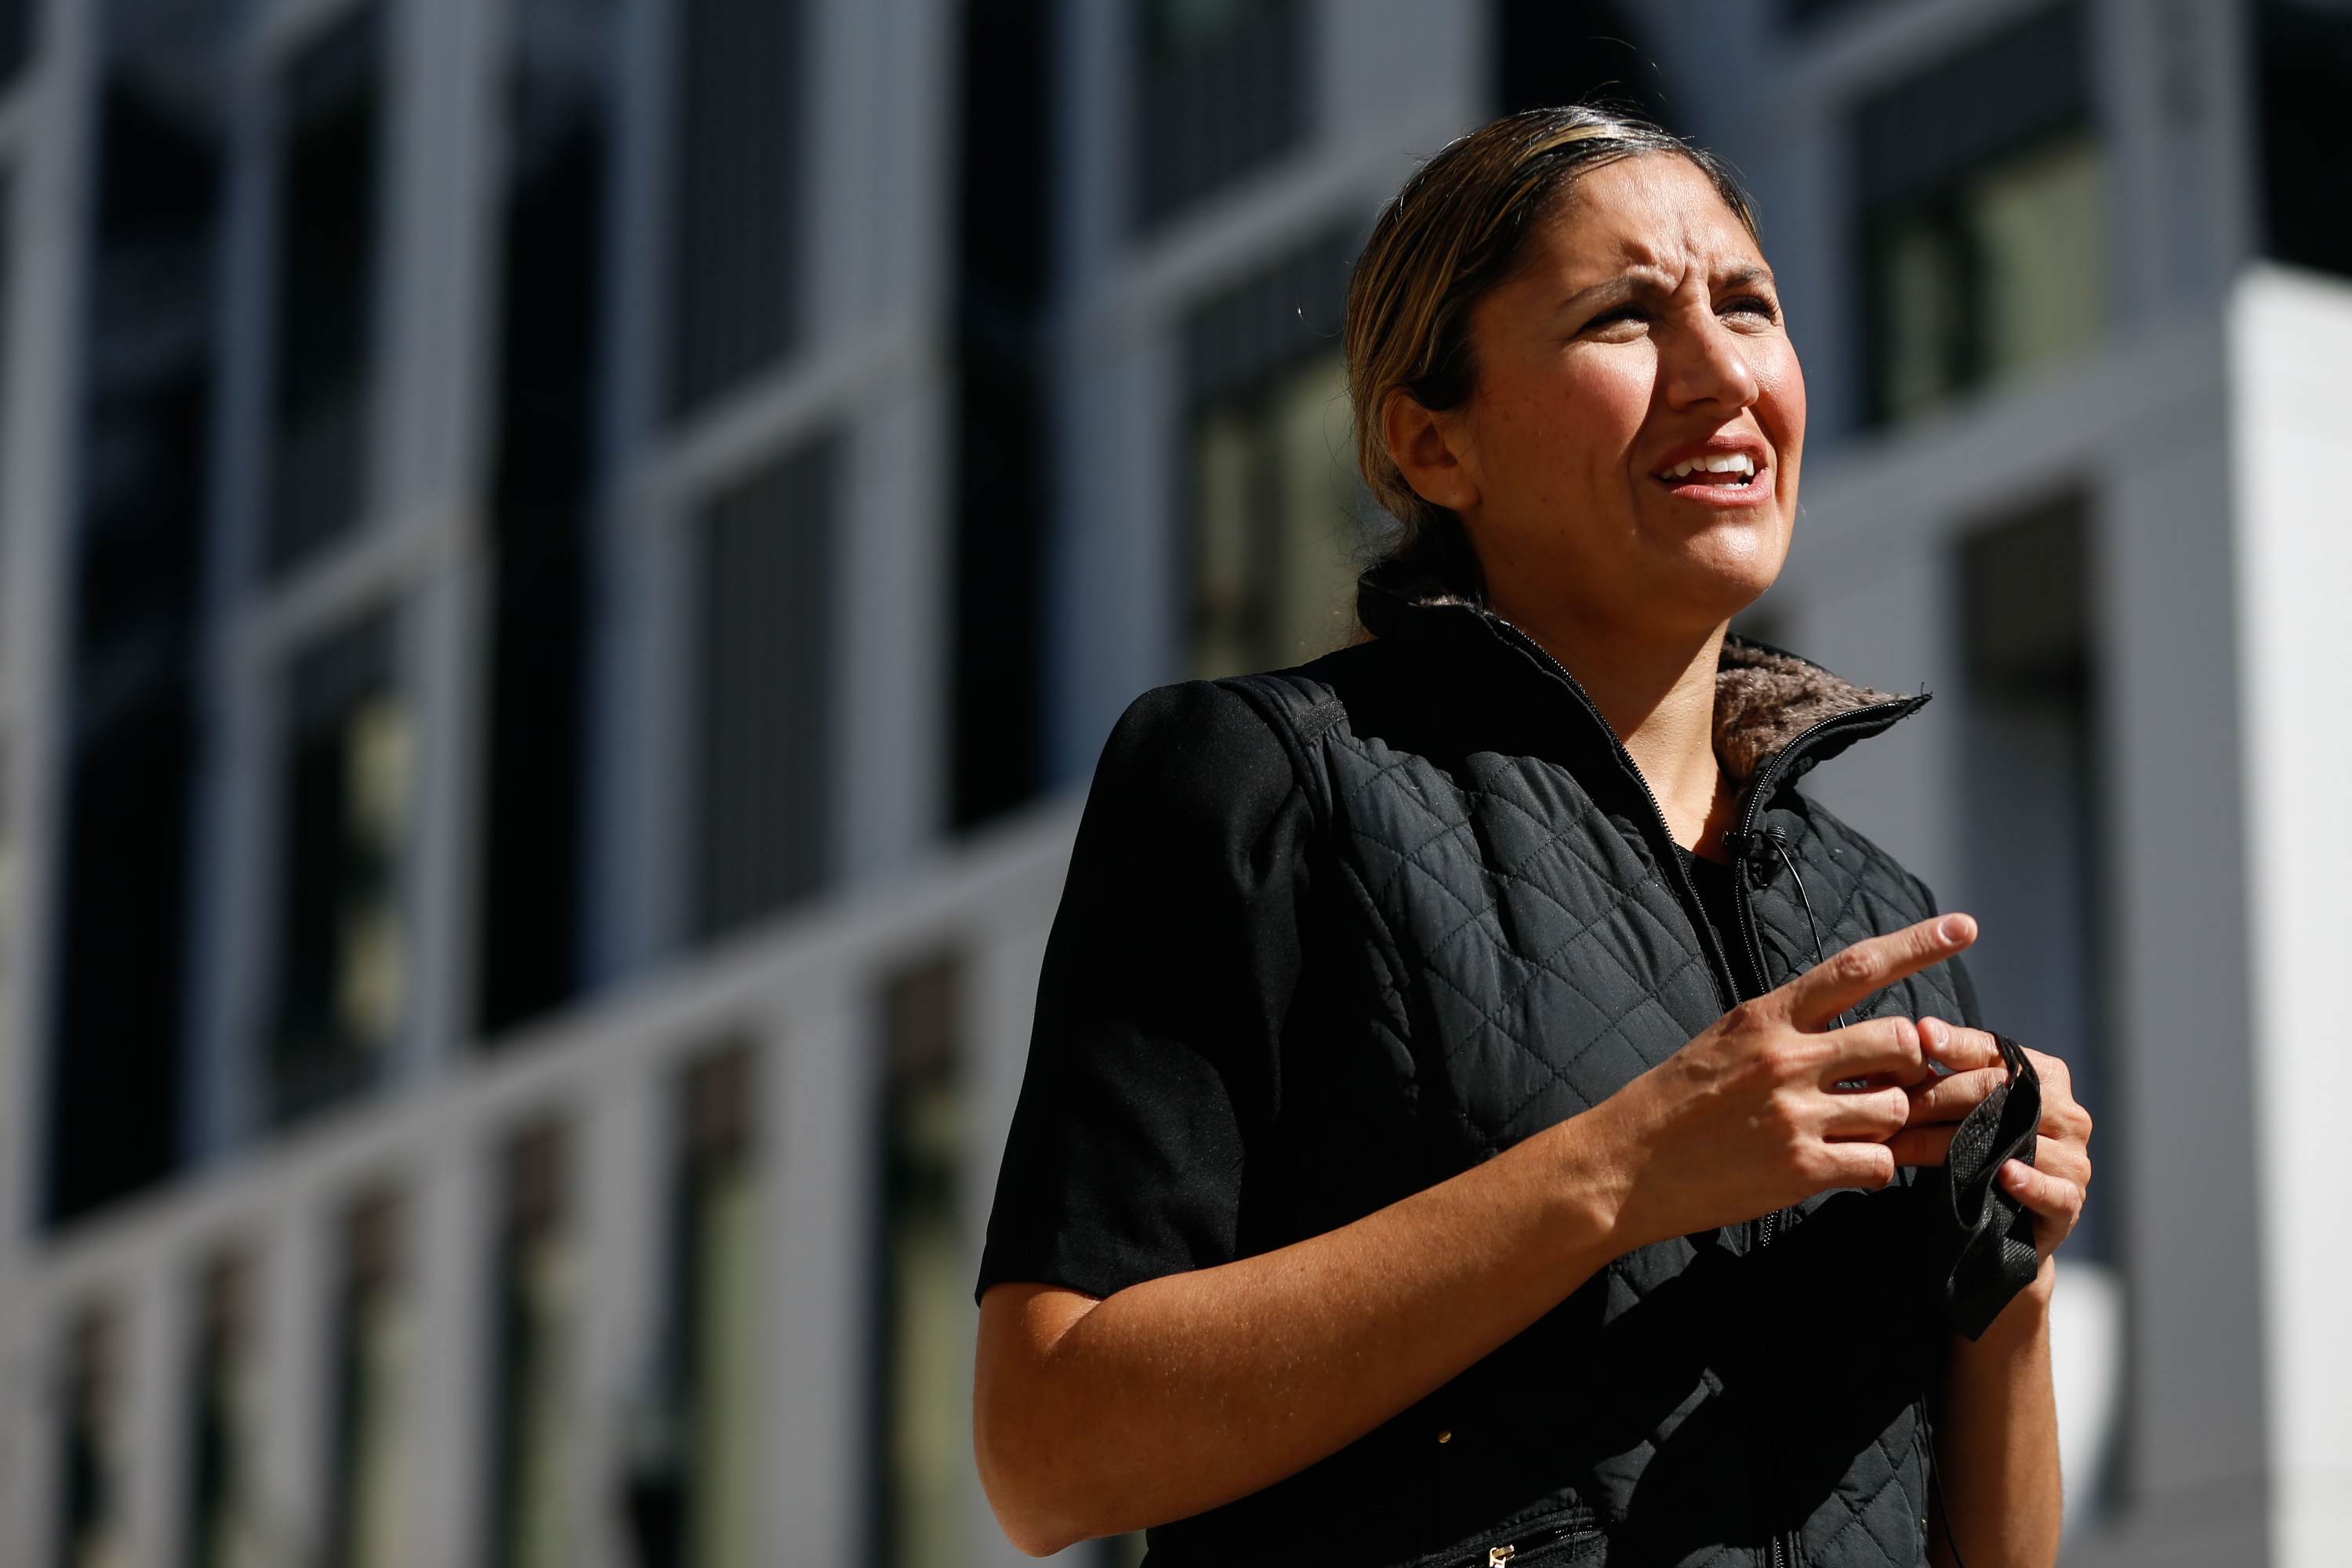 Ana Valdemoros discusses a notice of funding availability for the development of affordable housing in Salt Lake City.